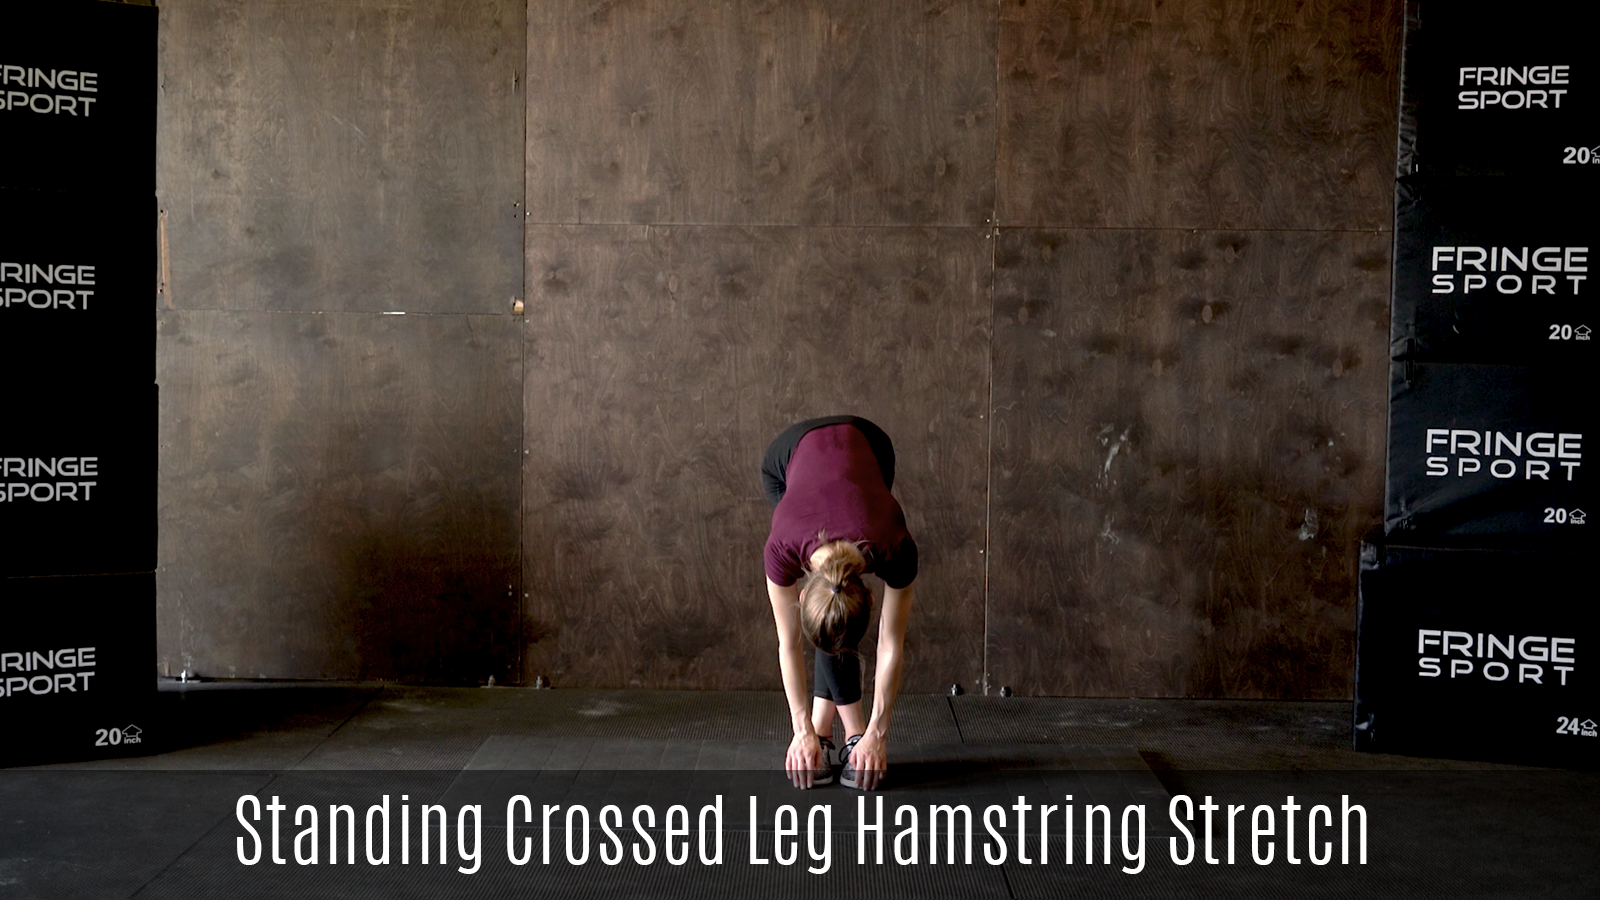 standing crossed legs hamstring stretch demo